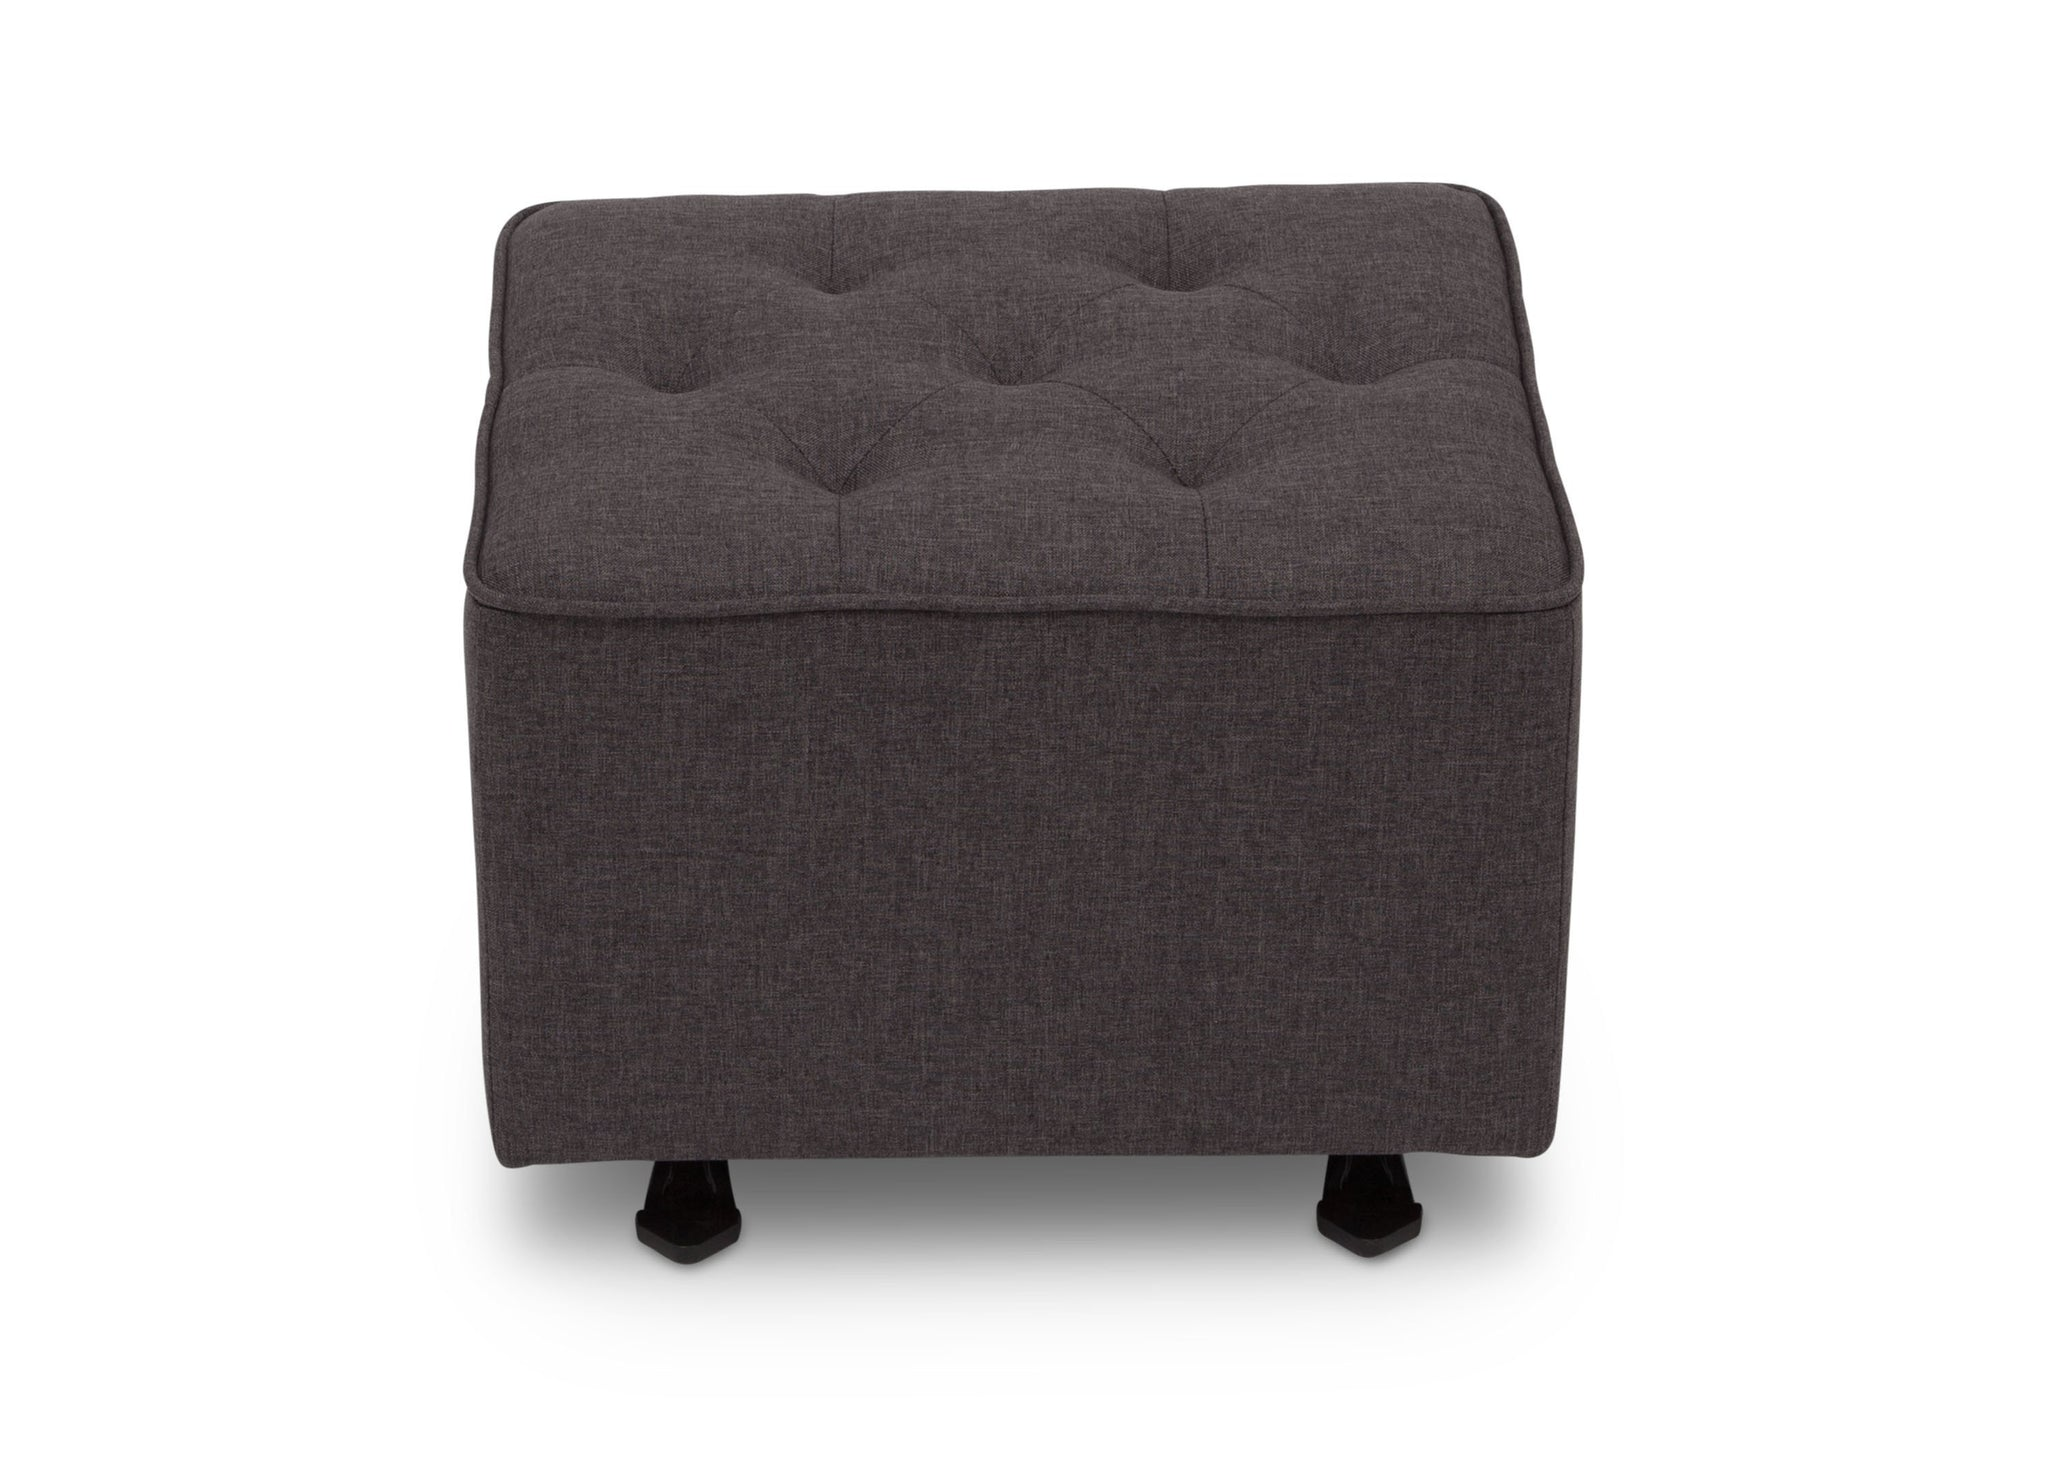 Delta Children Charcoal Grey (931) Emma Diamond Tufted Nursery Gliding Ottoman, front view, c3c